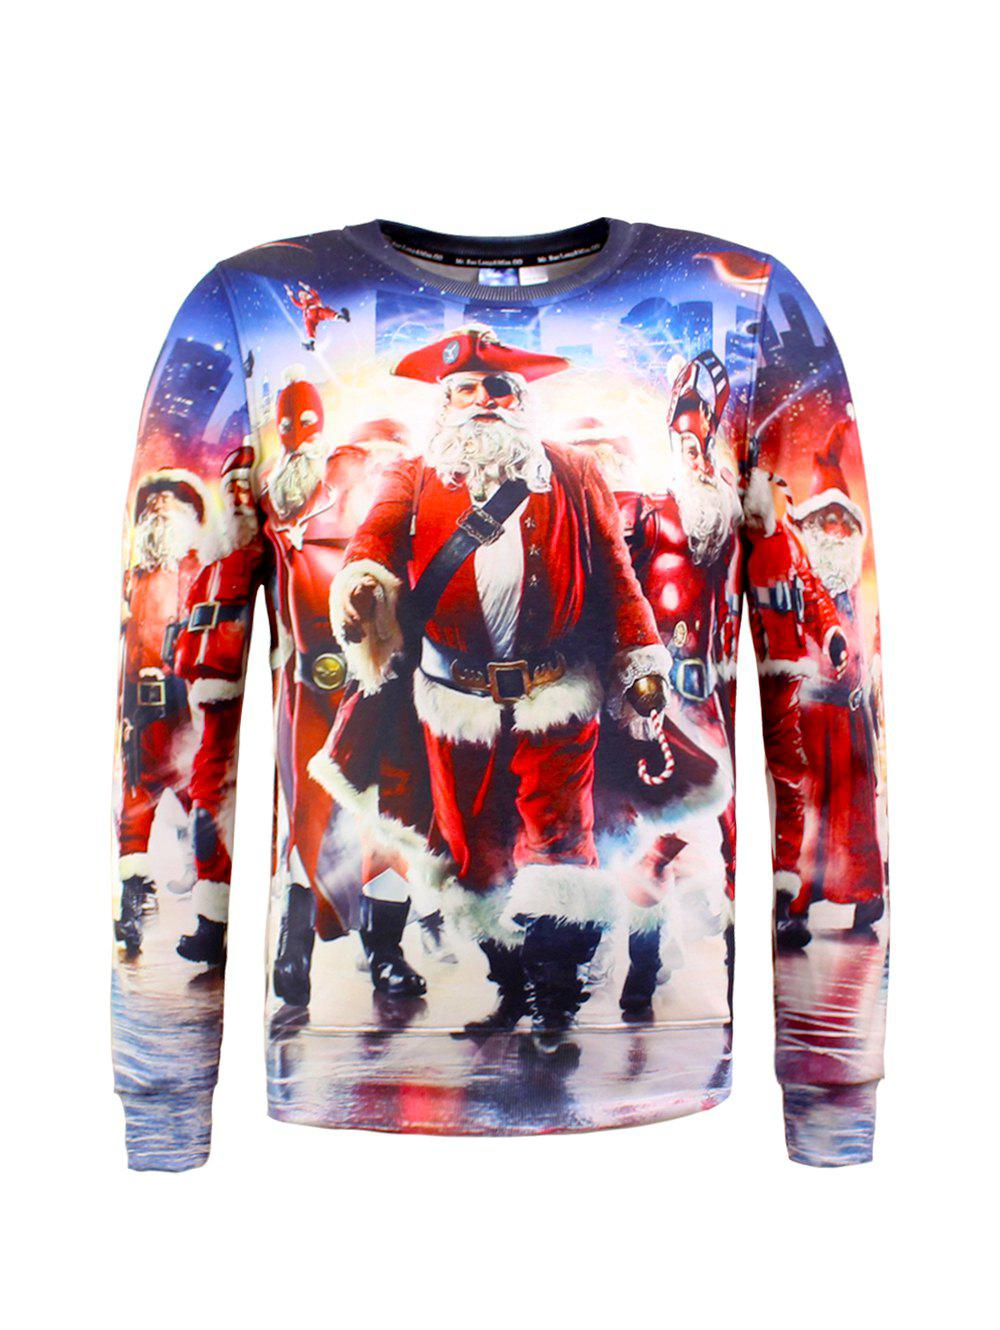 Buy Santa Claus 3D Printed Christmas Sweatshirt